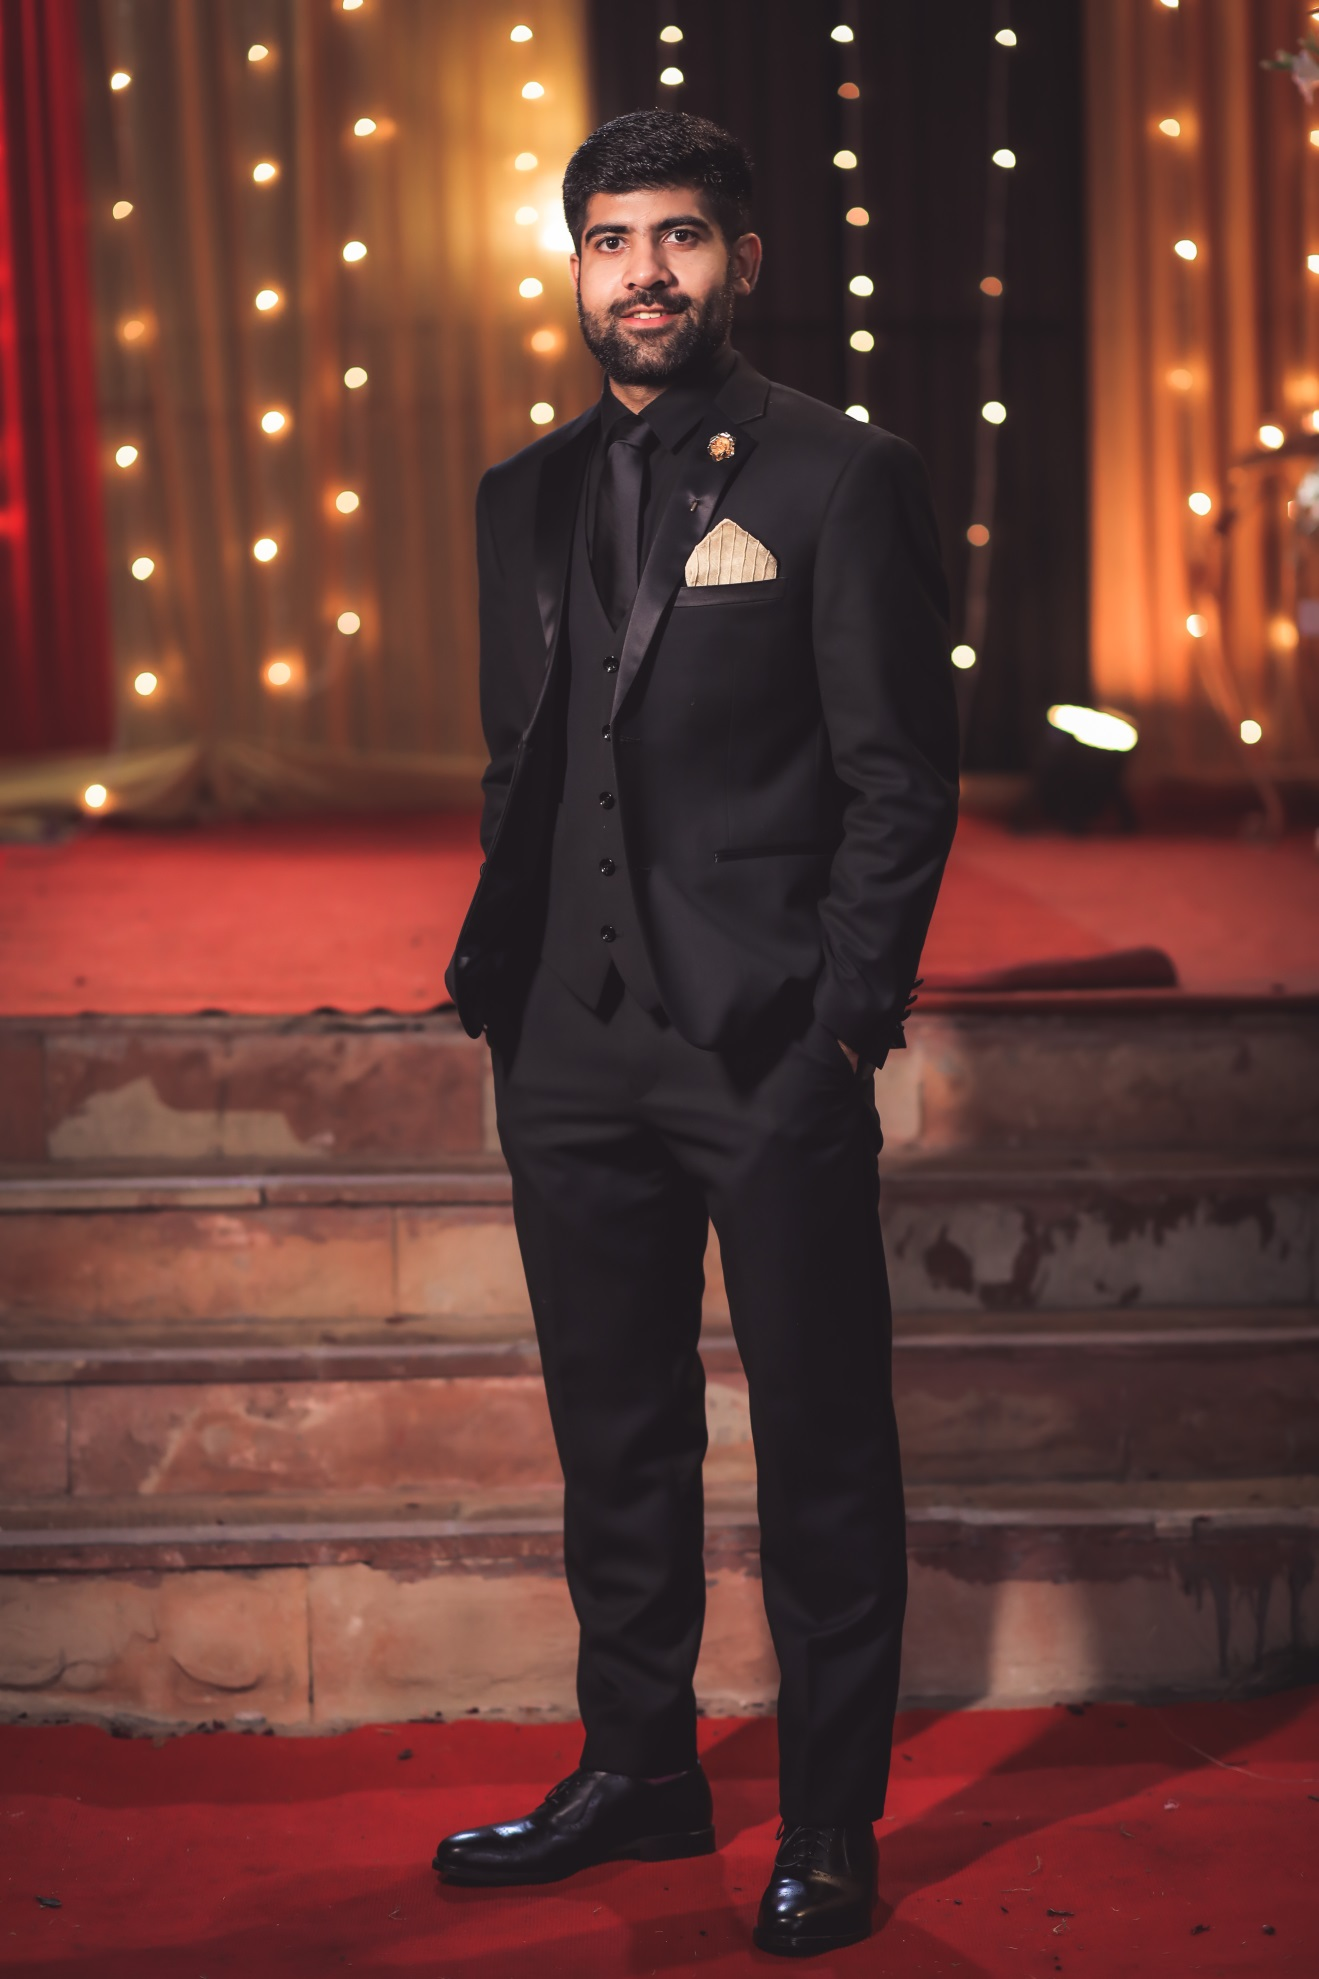 Black Tuxedo for reception